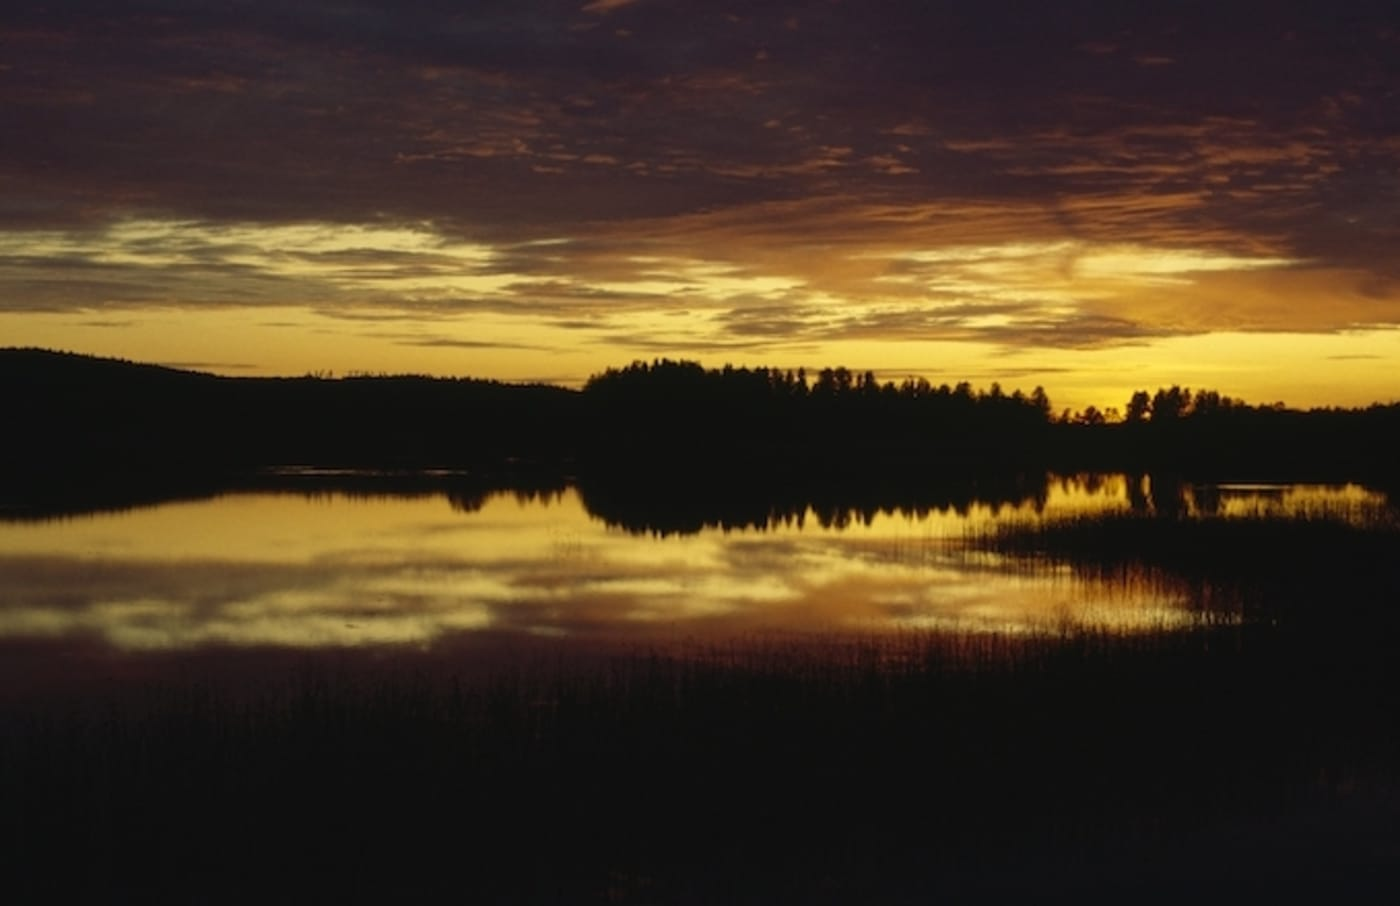 Sunset and clouds over a lake, Lakeland, Finland.